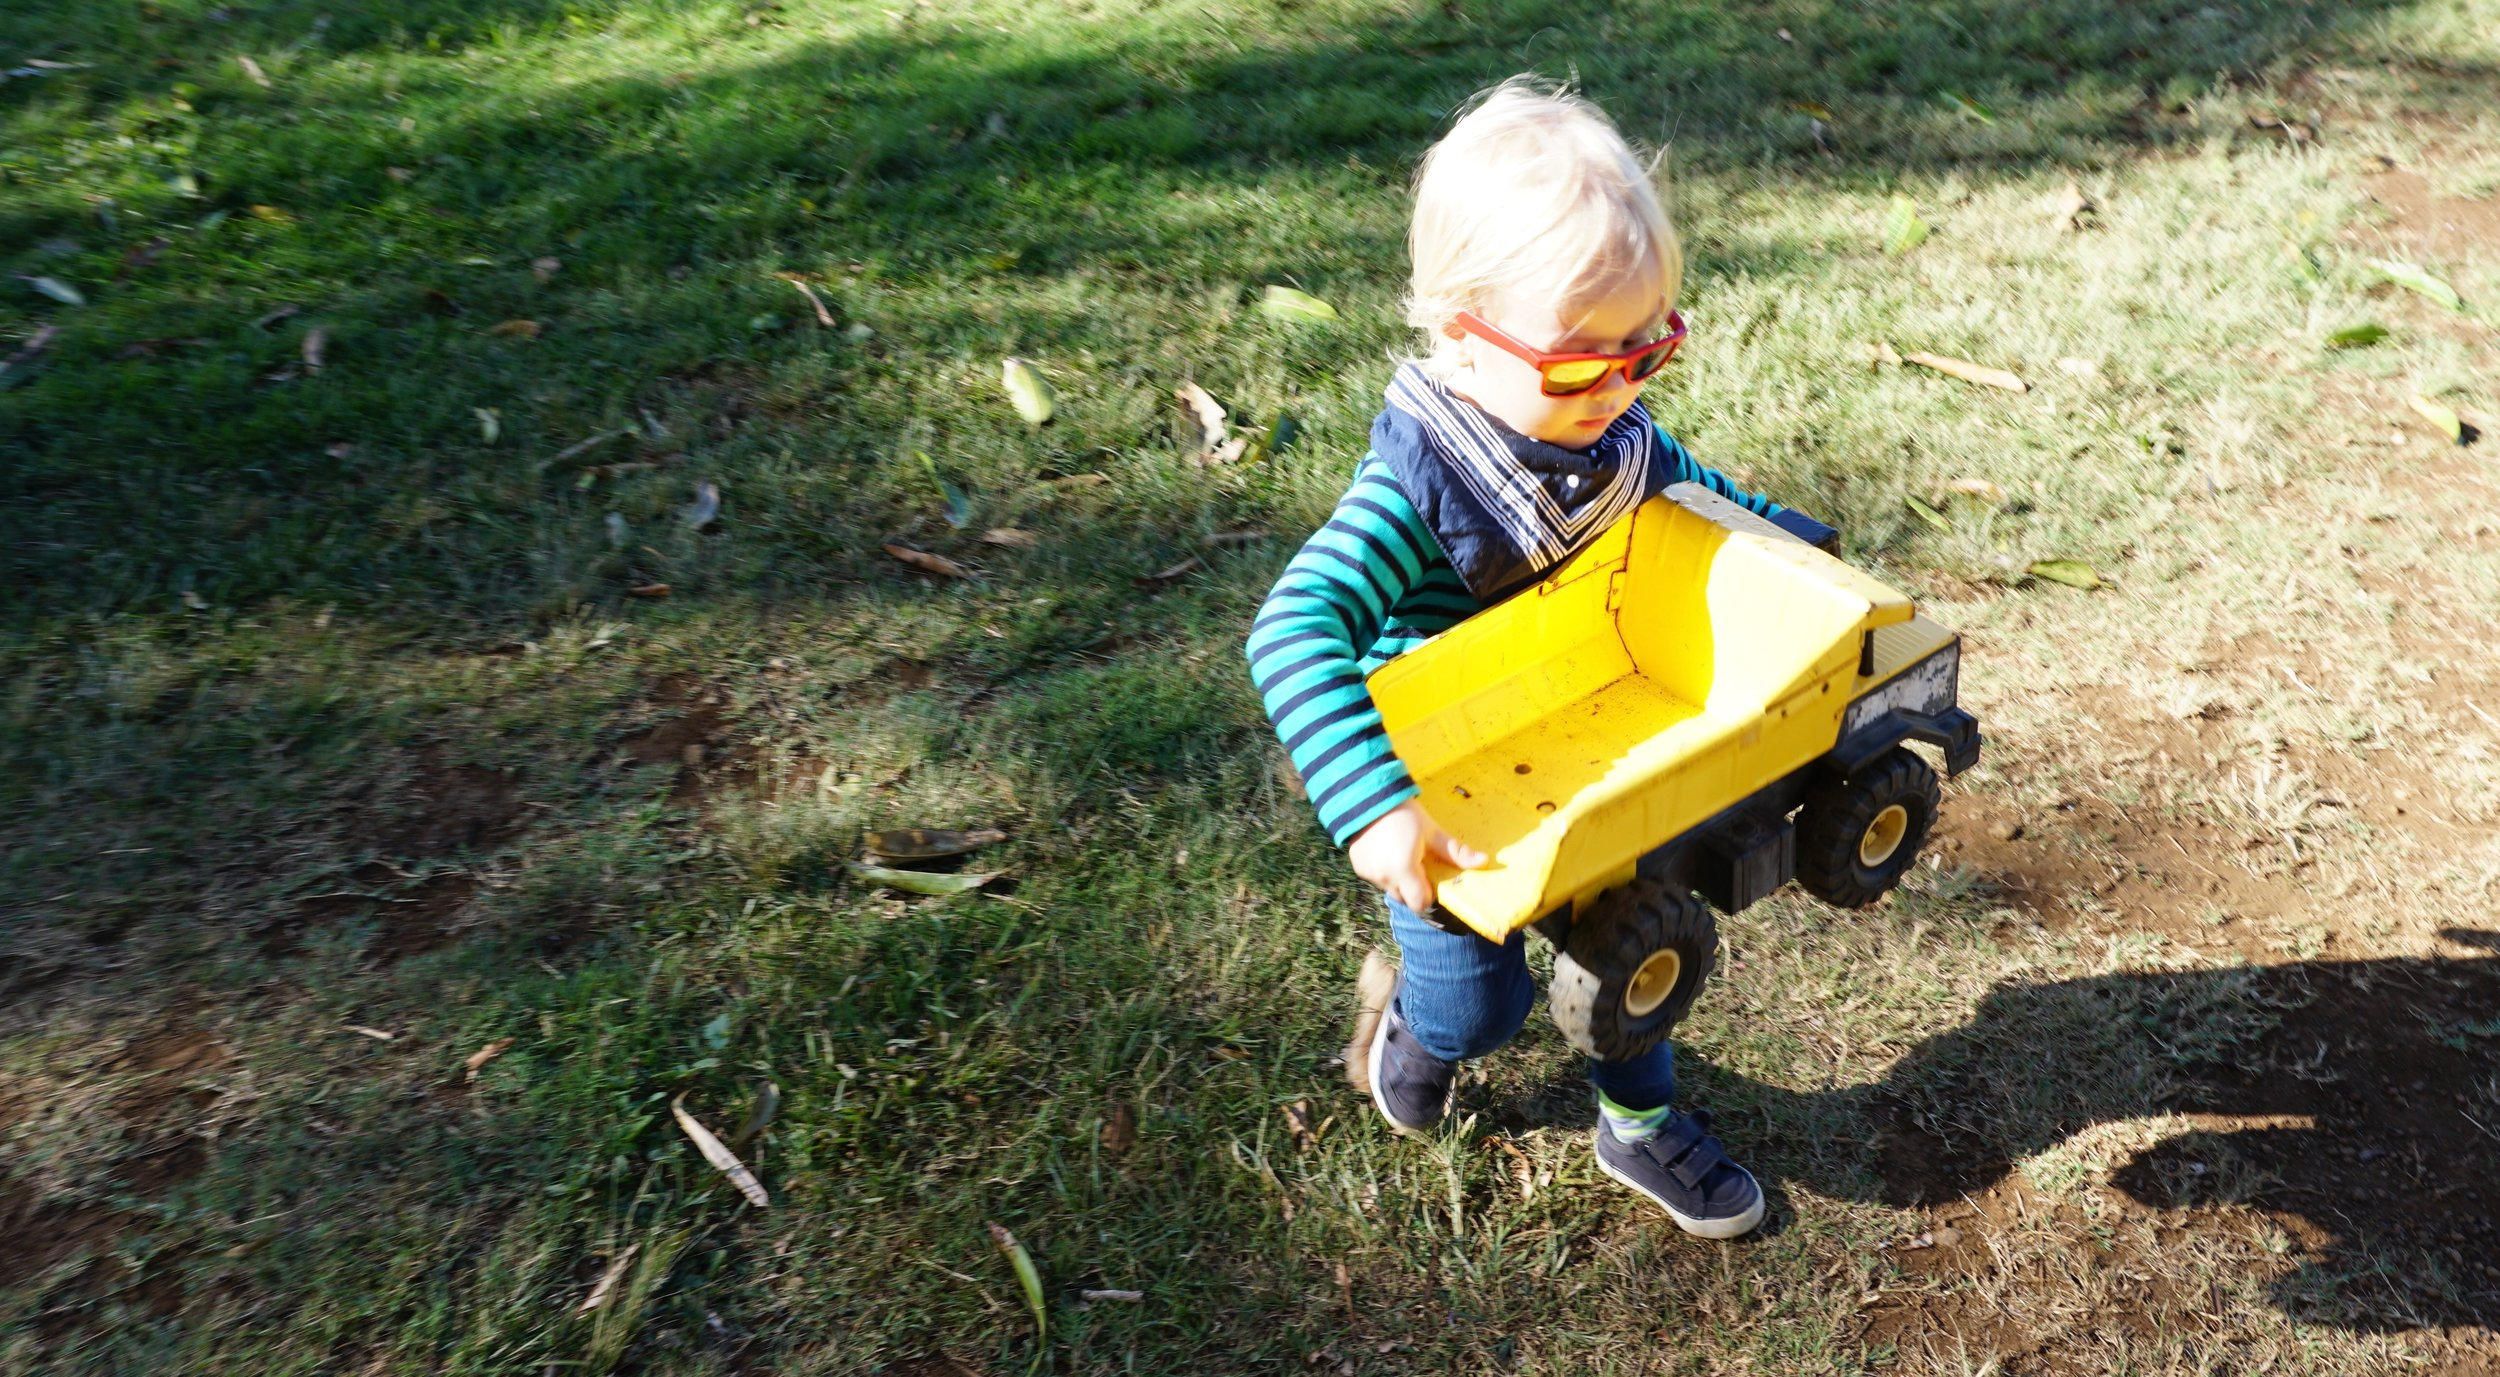 Blue Styler playing with a vintage Tonka dump truck {Mr. Trip Styler used to have one...!} from the Toy Box